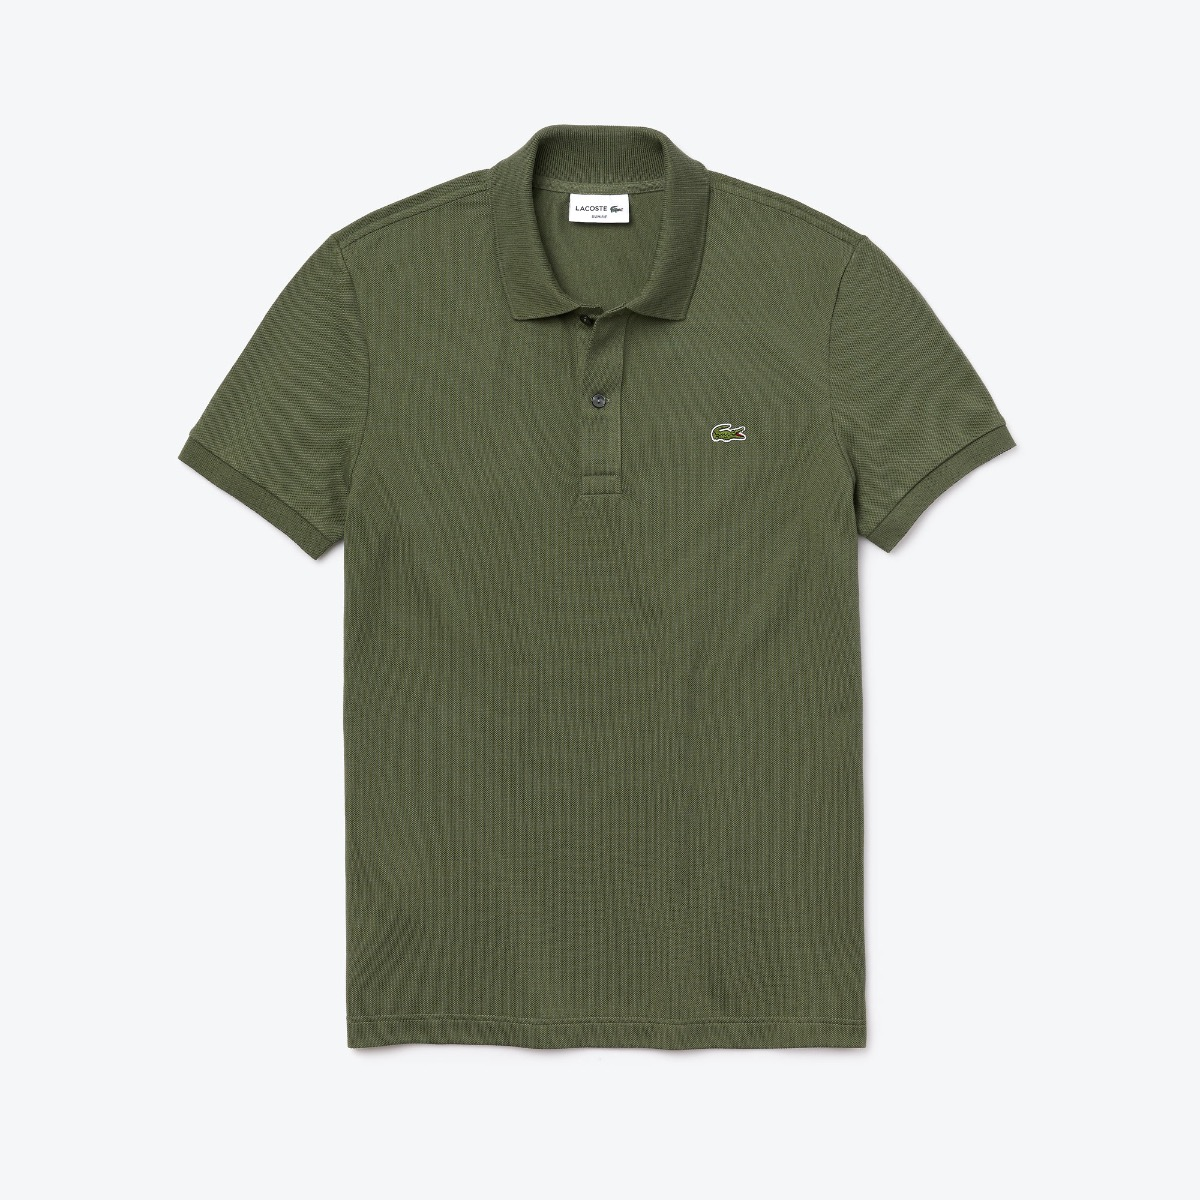 Lacoste Slim Fit Polo PH4012-XZD Khaki Groen maat